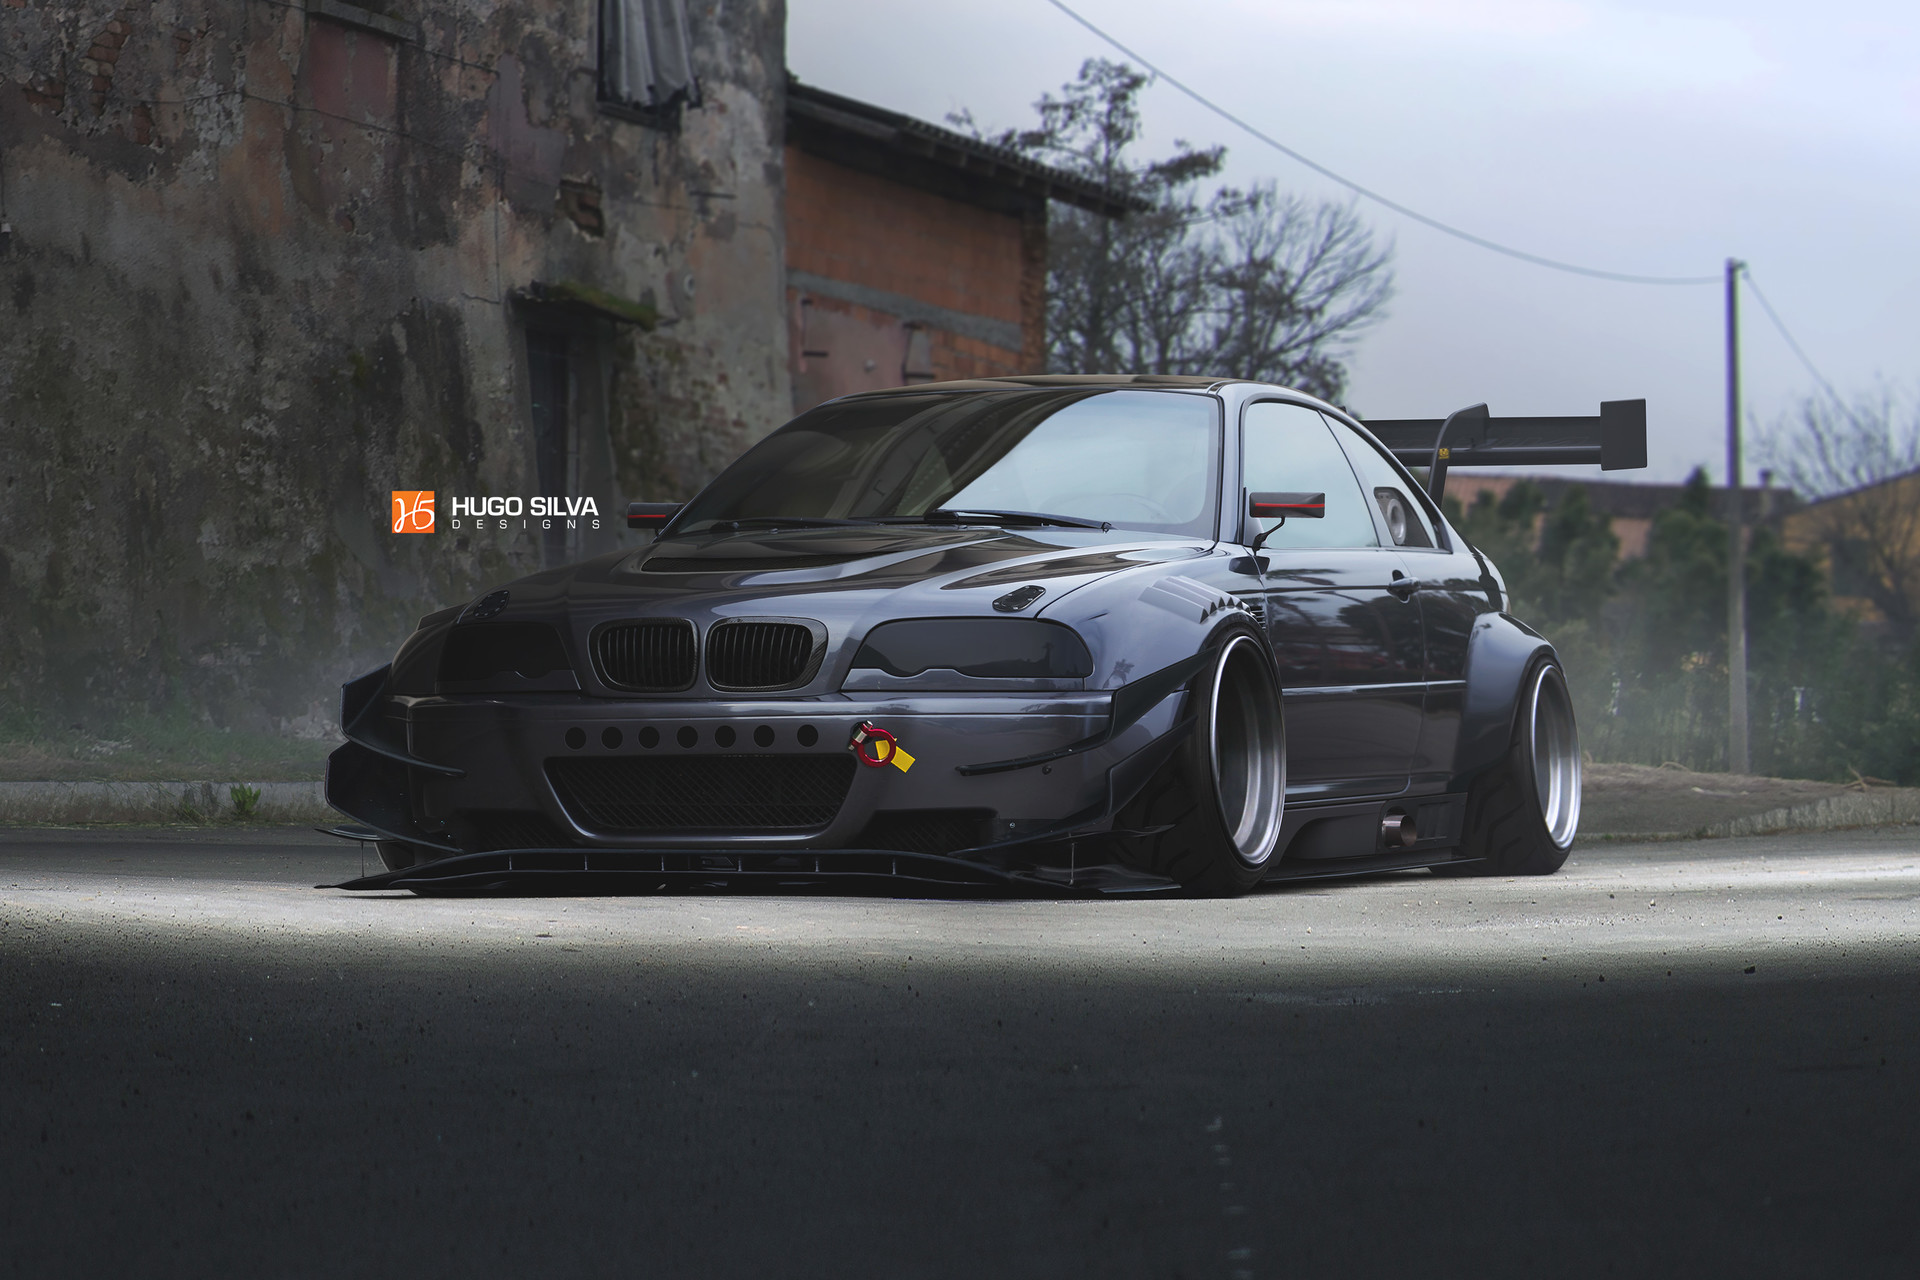 Artstation Widebody Bmw E46 M3 Hugo Silva